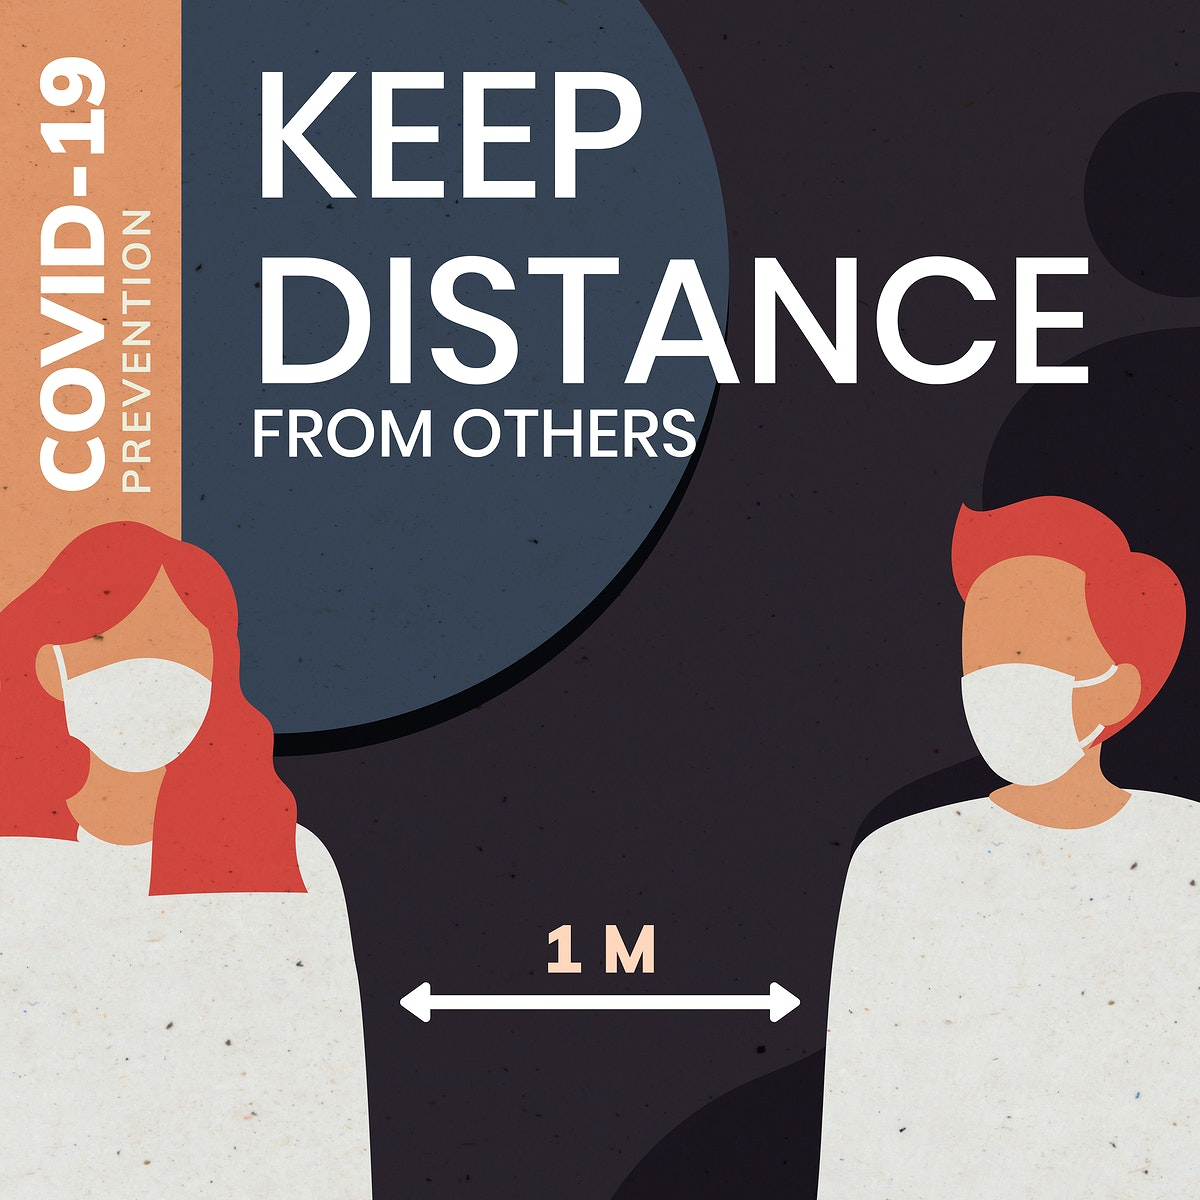 Keep distance from others covid-19 prevention message template vector